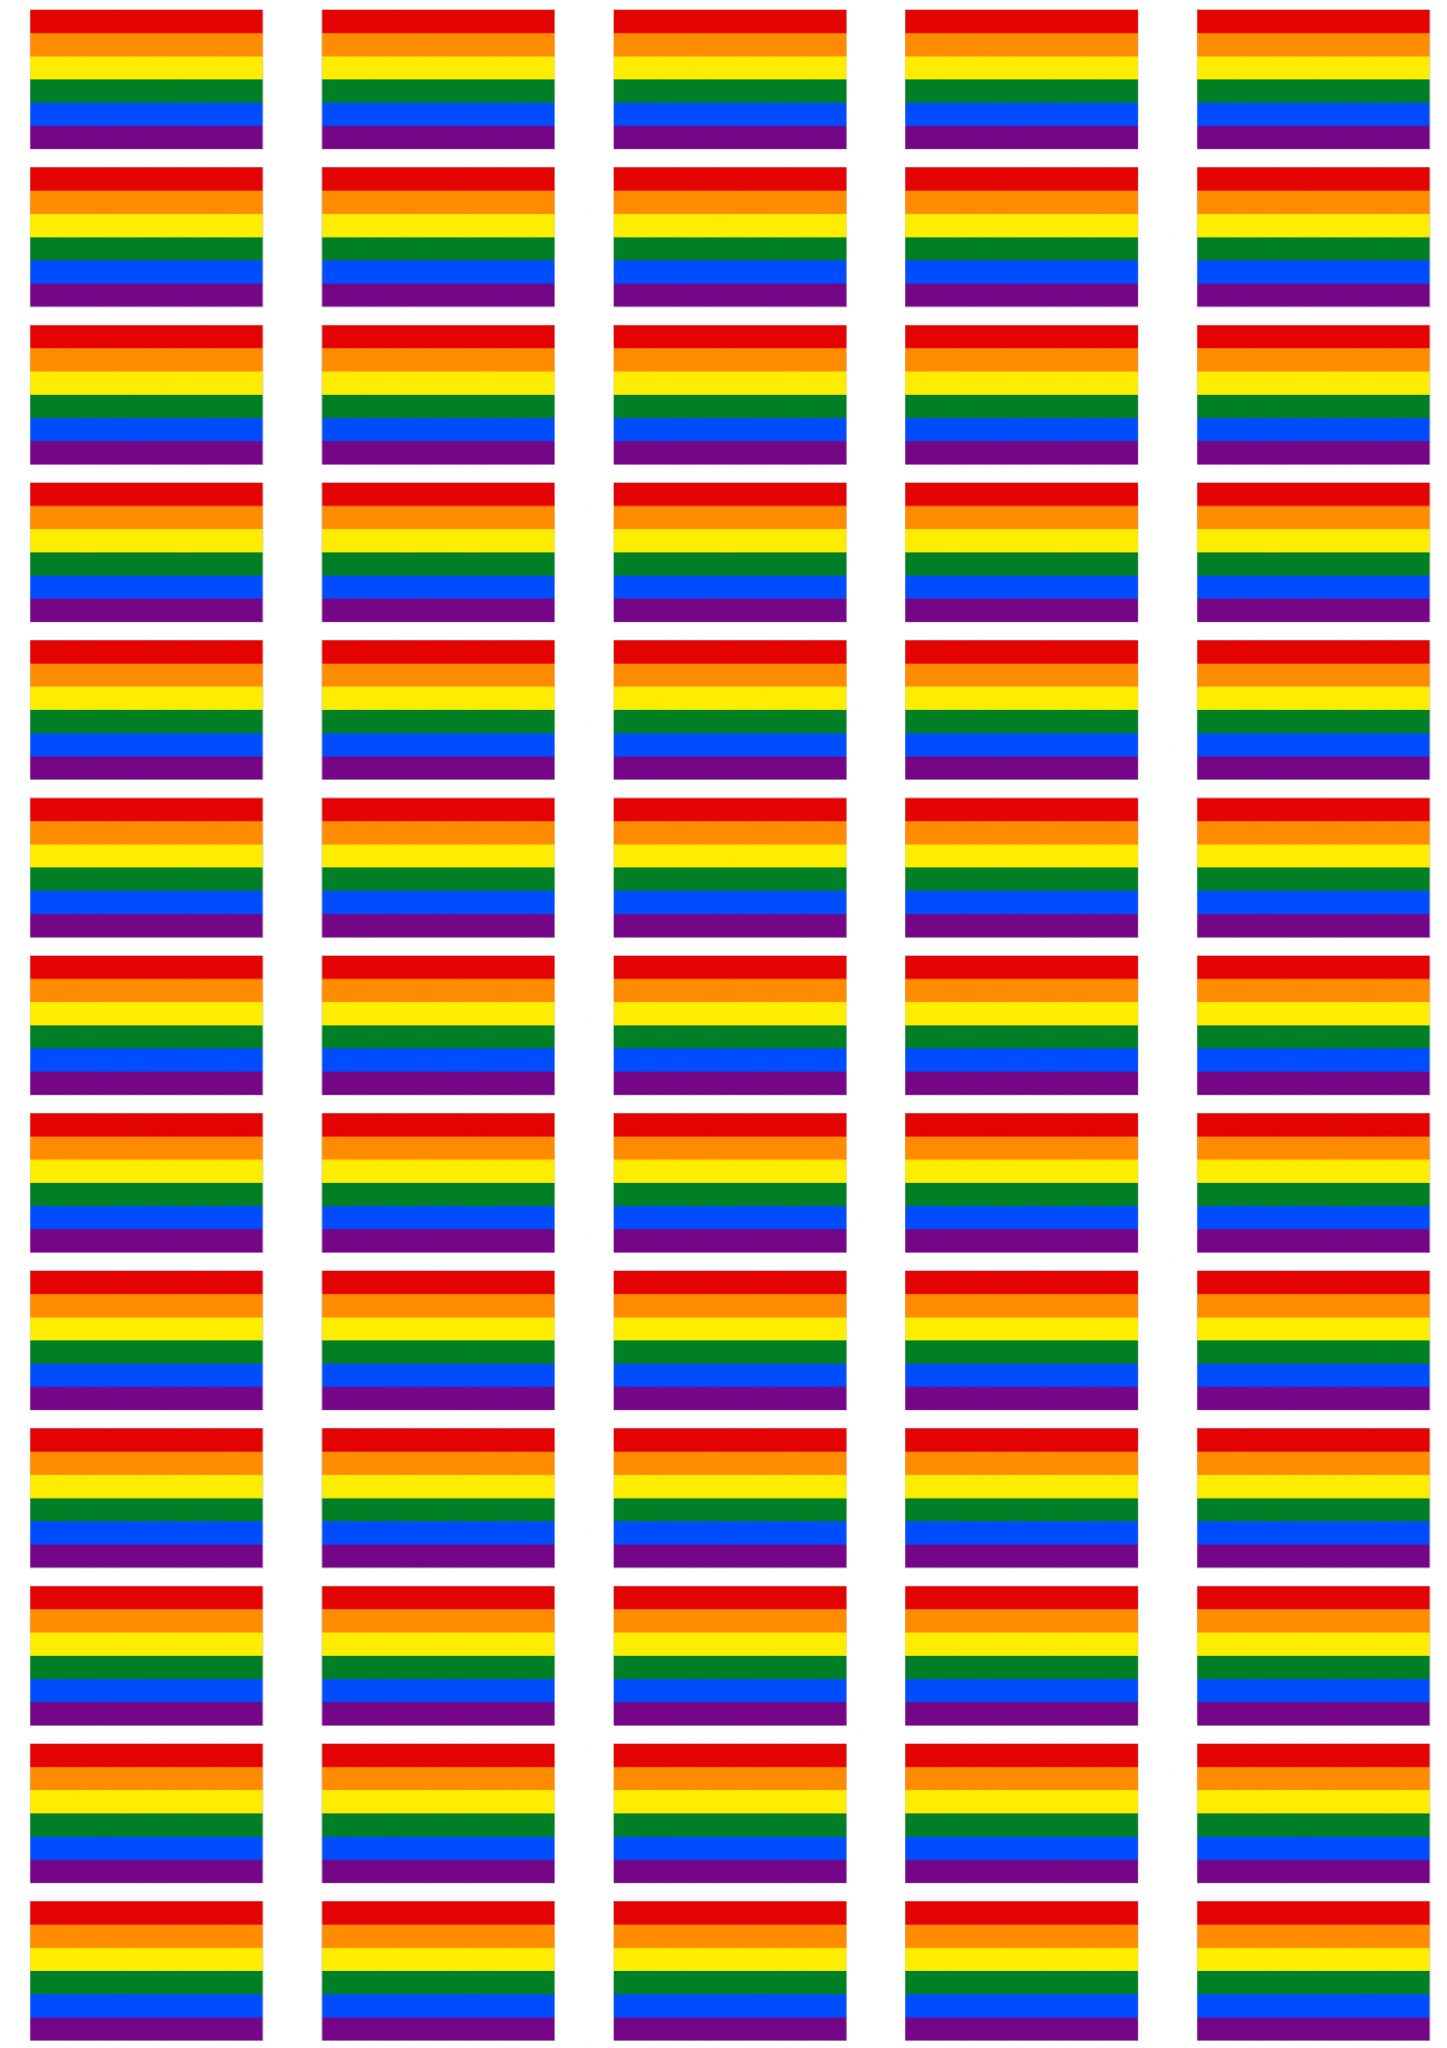 Gay Pride Rainbow Flag Stickers 65 Per Sheet